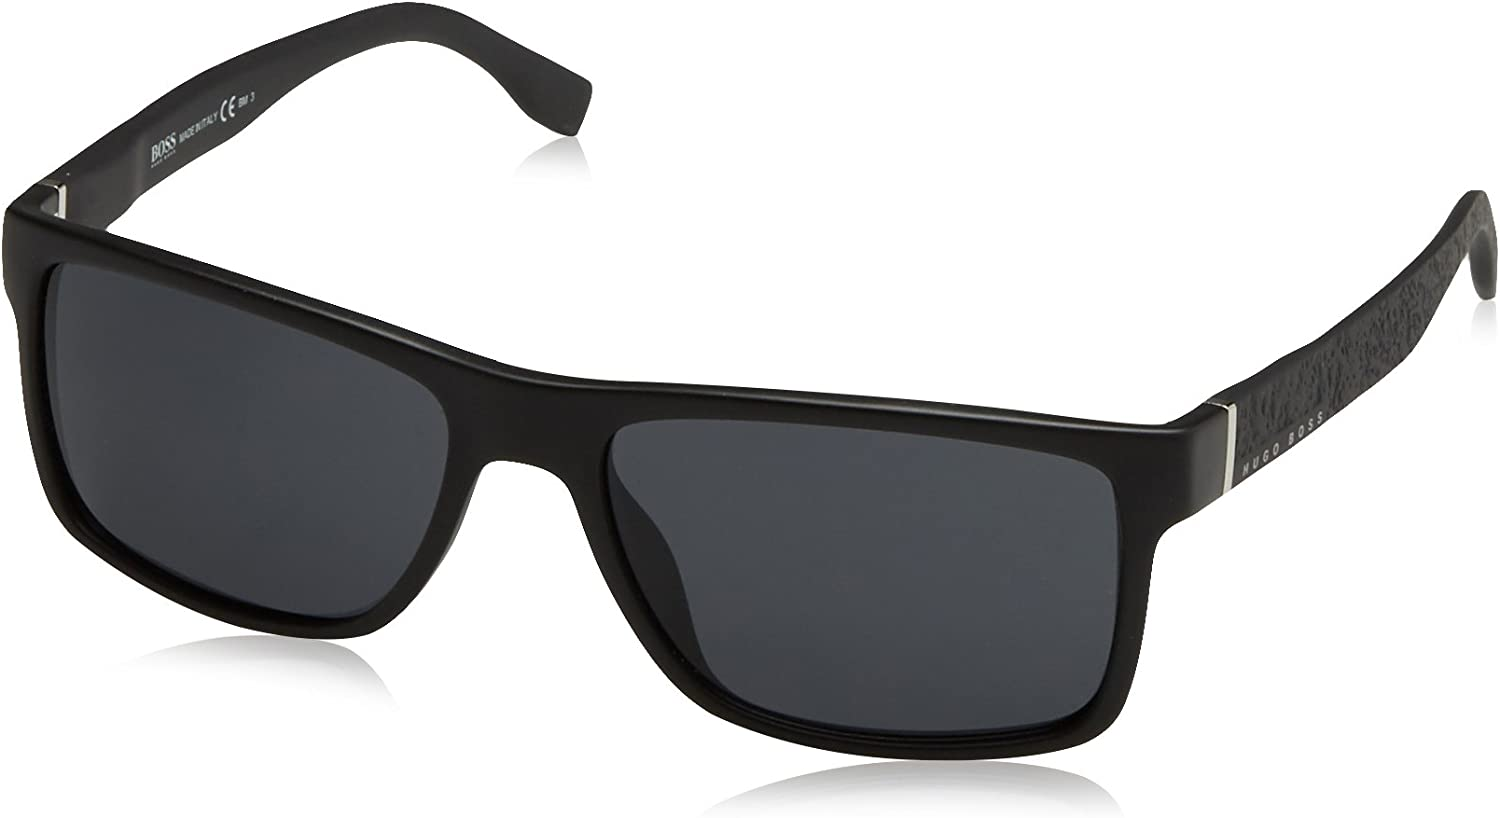 Amazon.com: BOSS by Hugo Boss Men's 0919/S Rectangular Sunglasses, Matte Black, 57 mm: Shoes